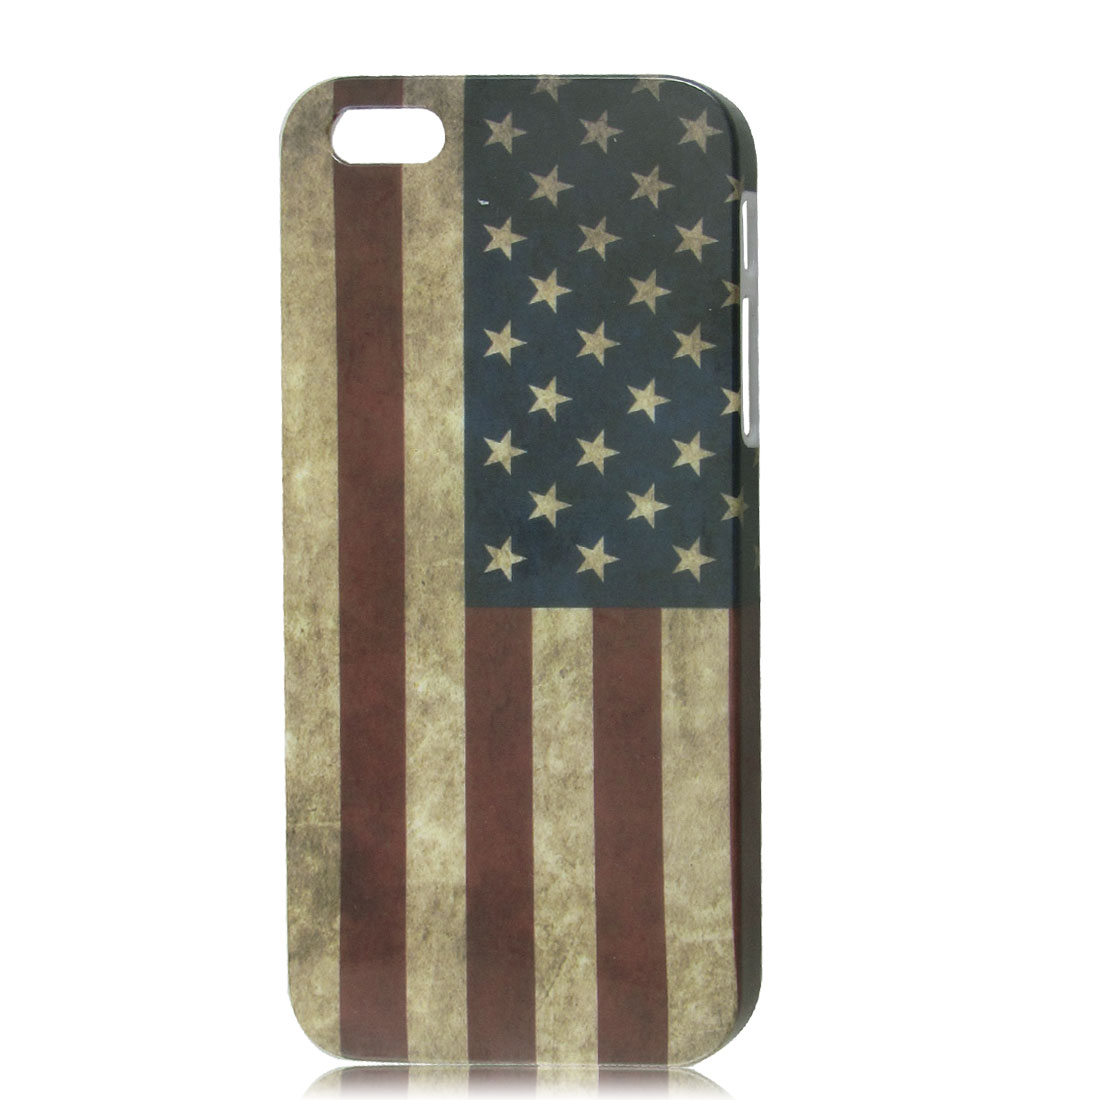 Retro Style US American National Flag IMD Hard Case Back Cover for iPhone 5 5G